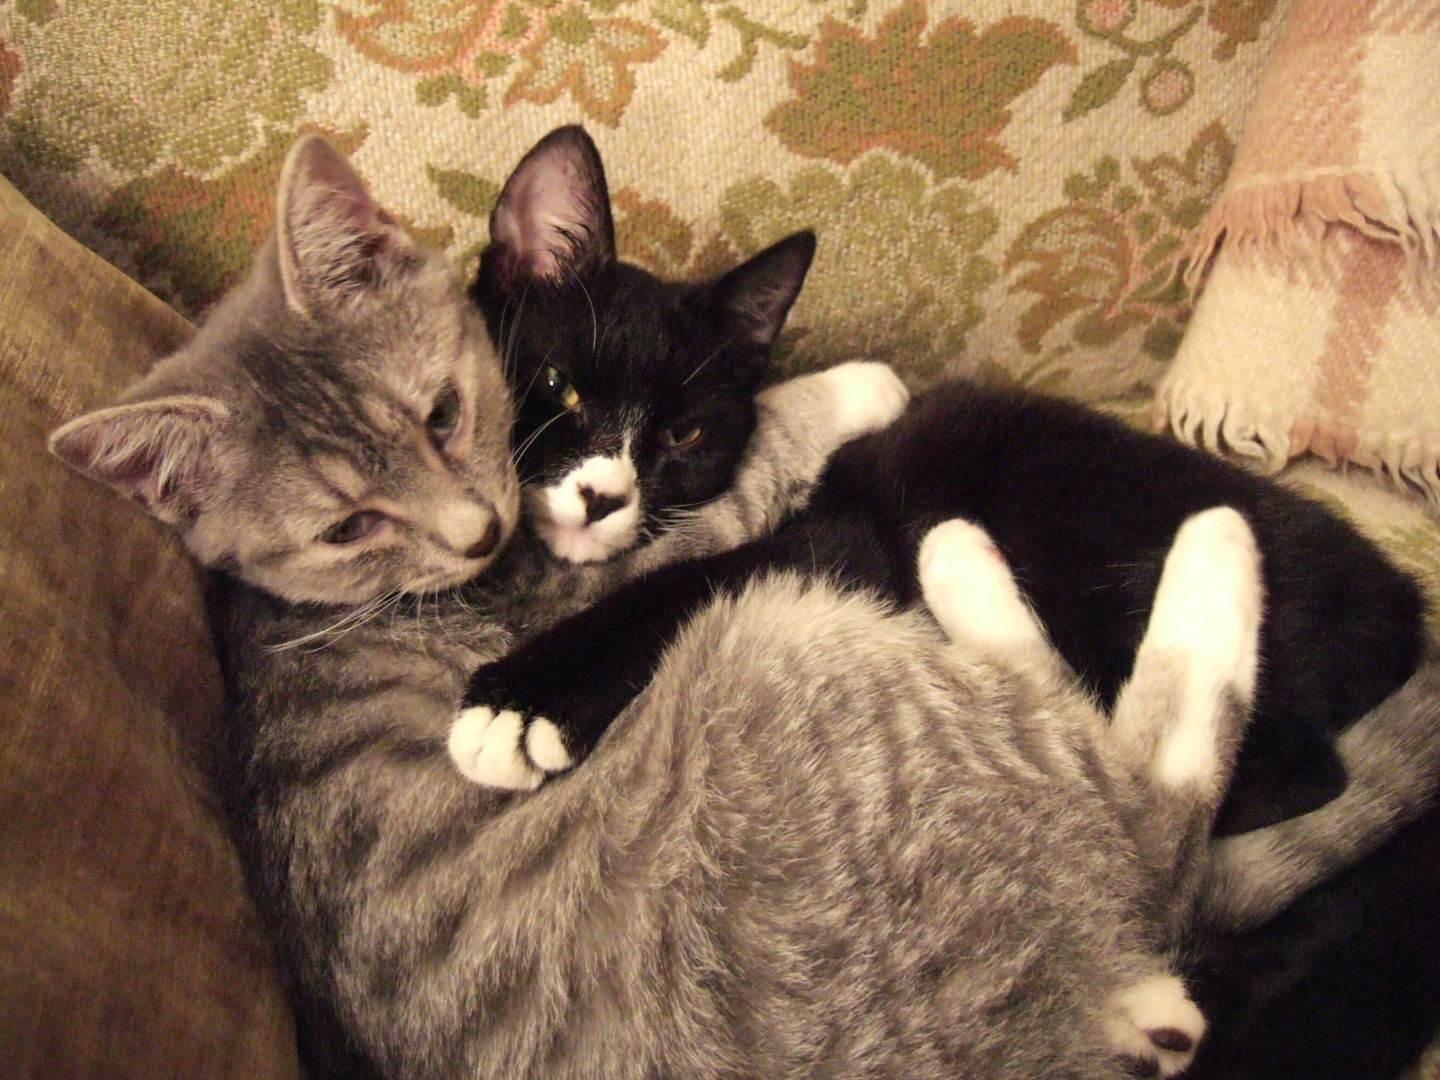 Friends forever! Science reporter Amy Standen's cats are besties.  Chris Colin/KQED